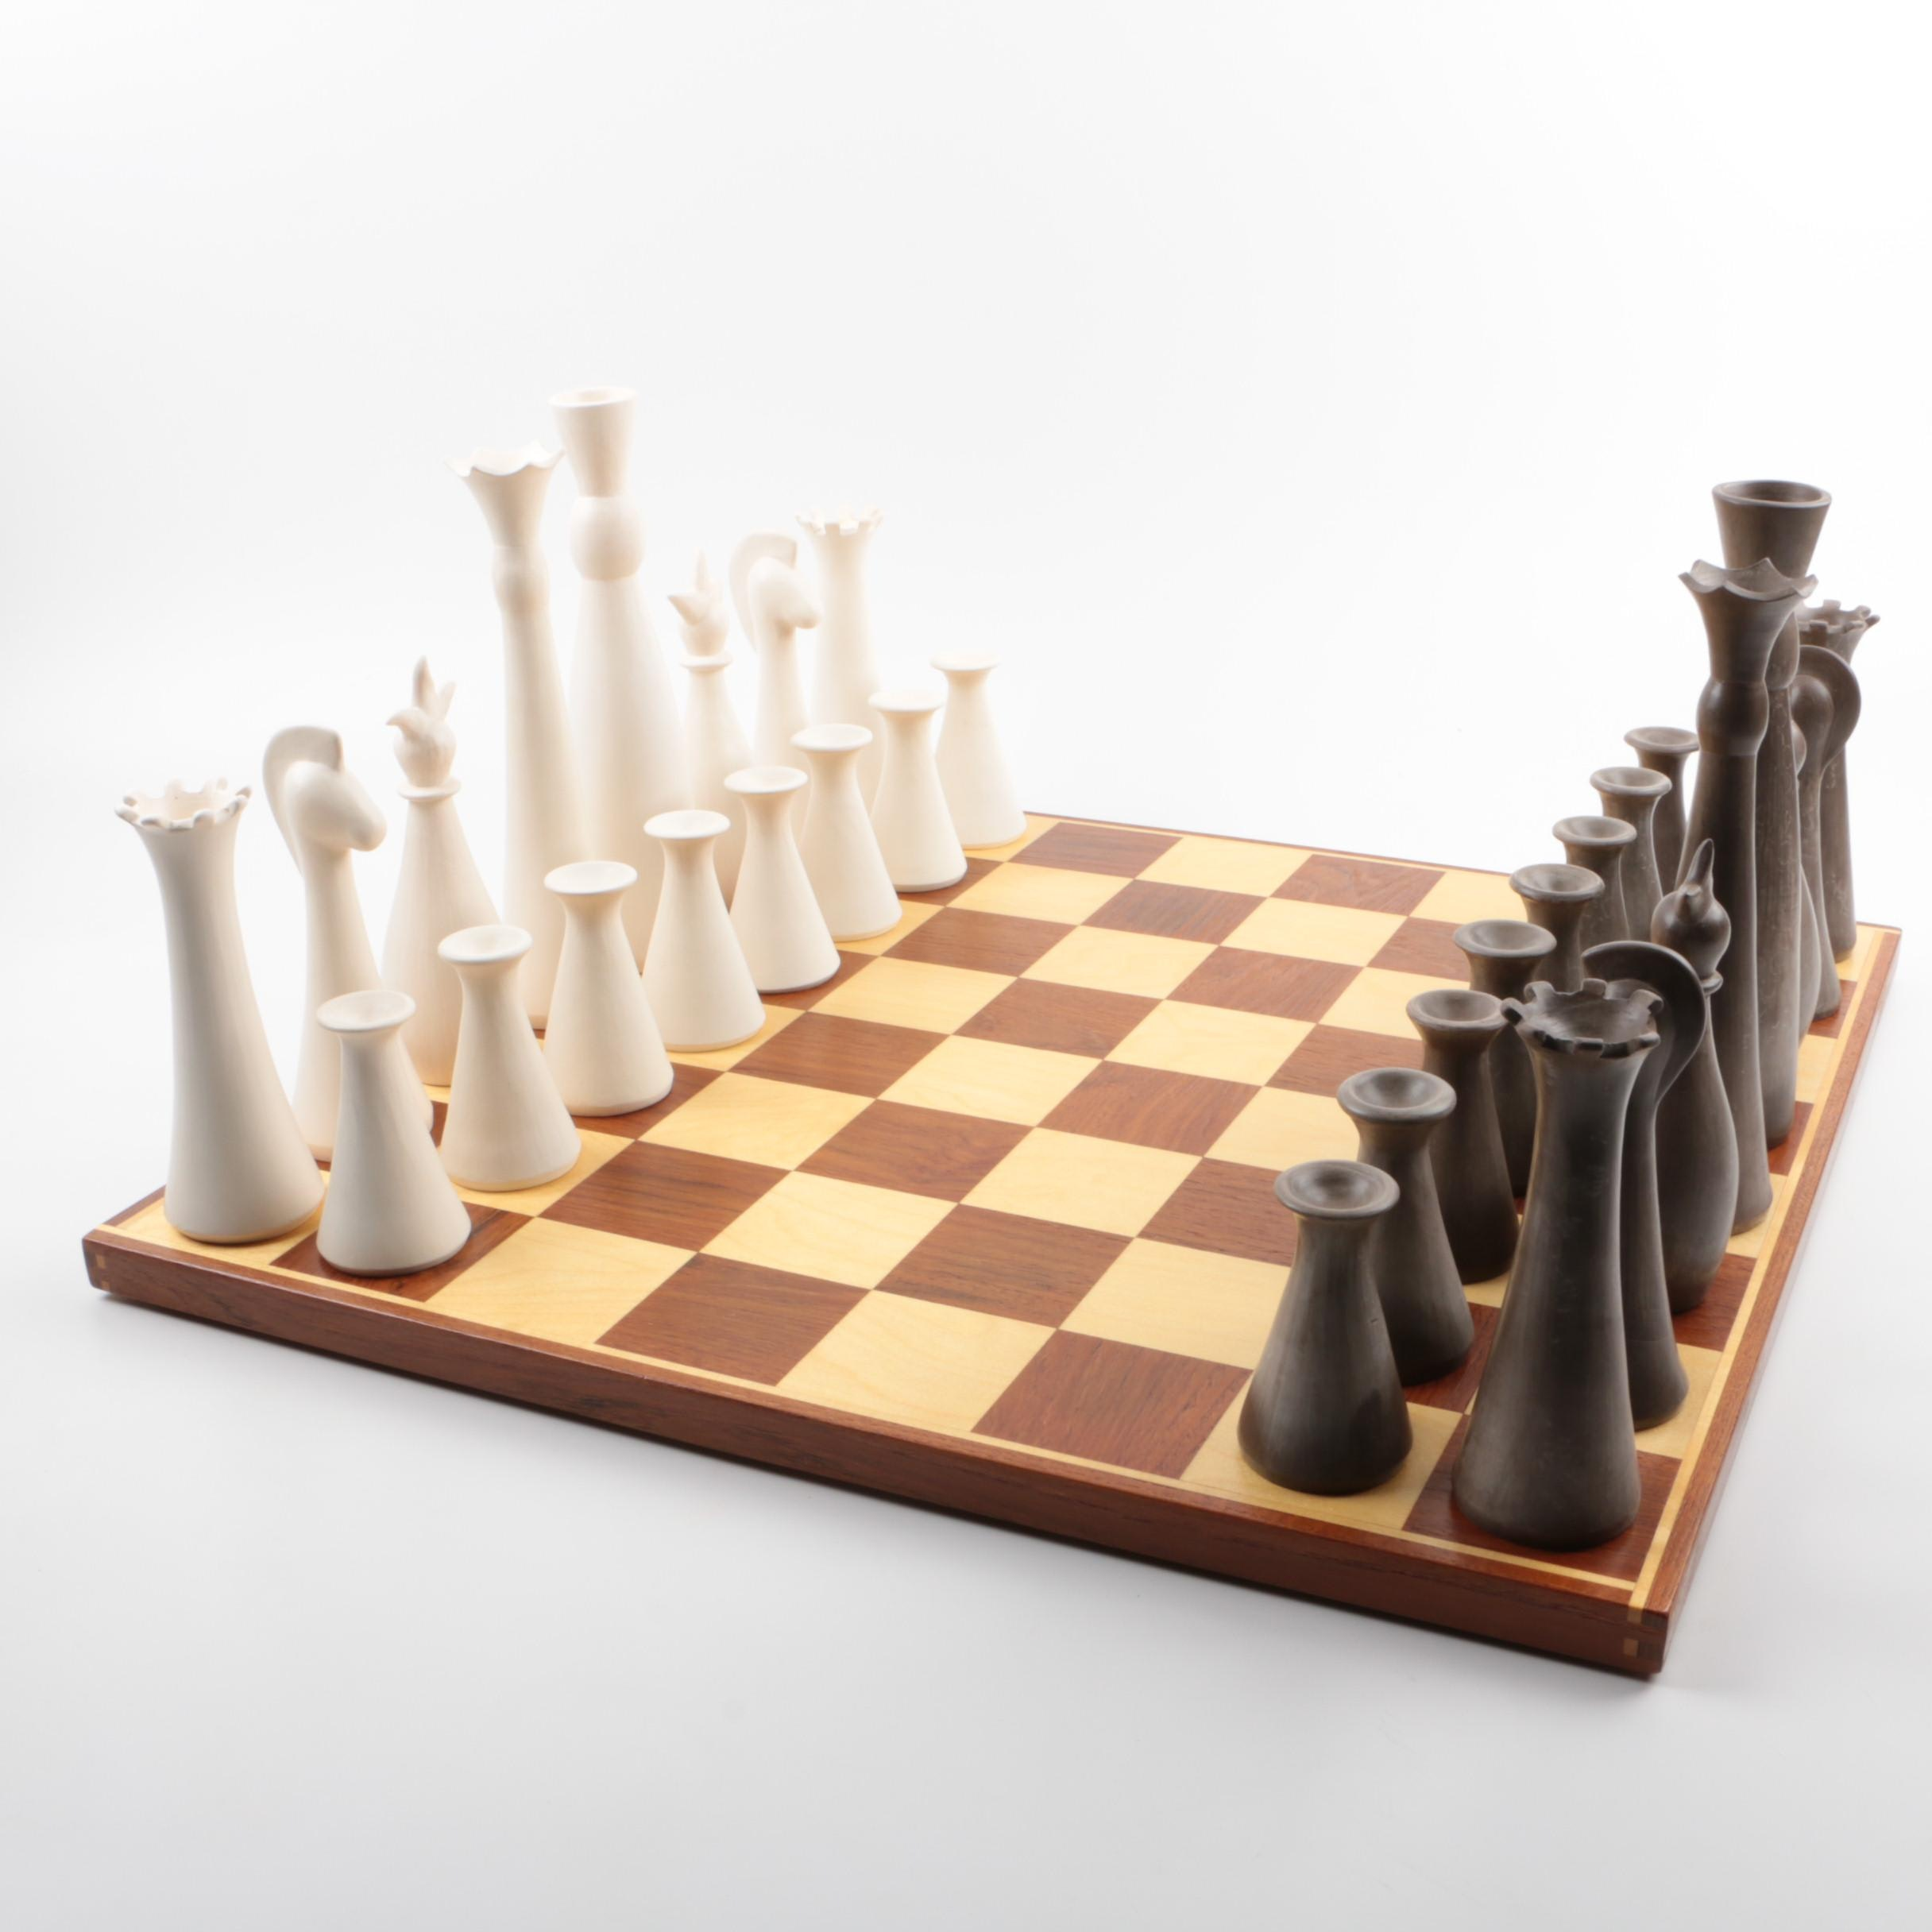 French Artist Marilyn Vergne Ceramic Chess Set and Board